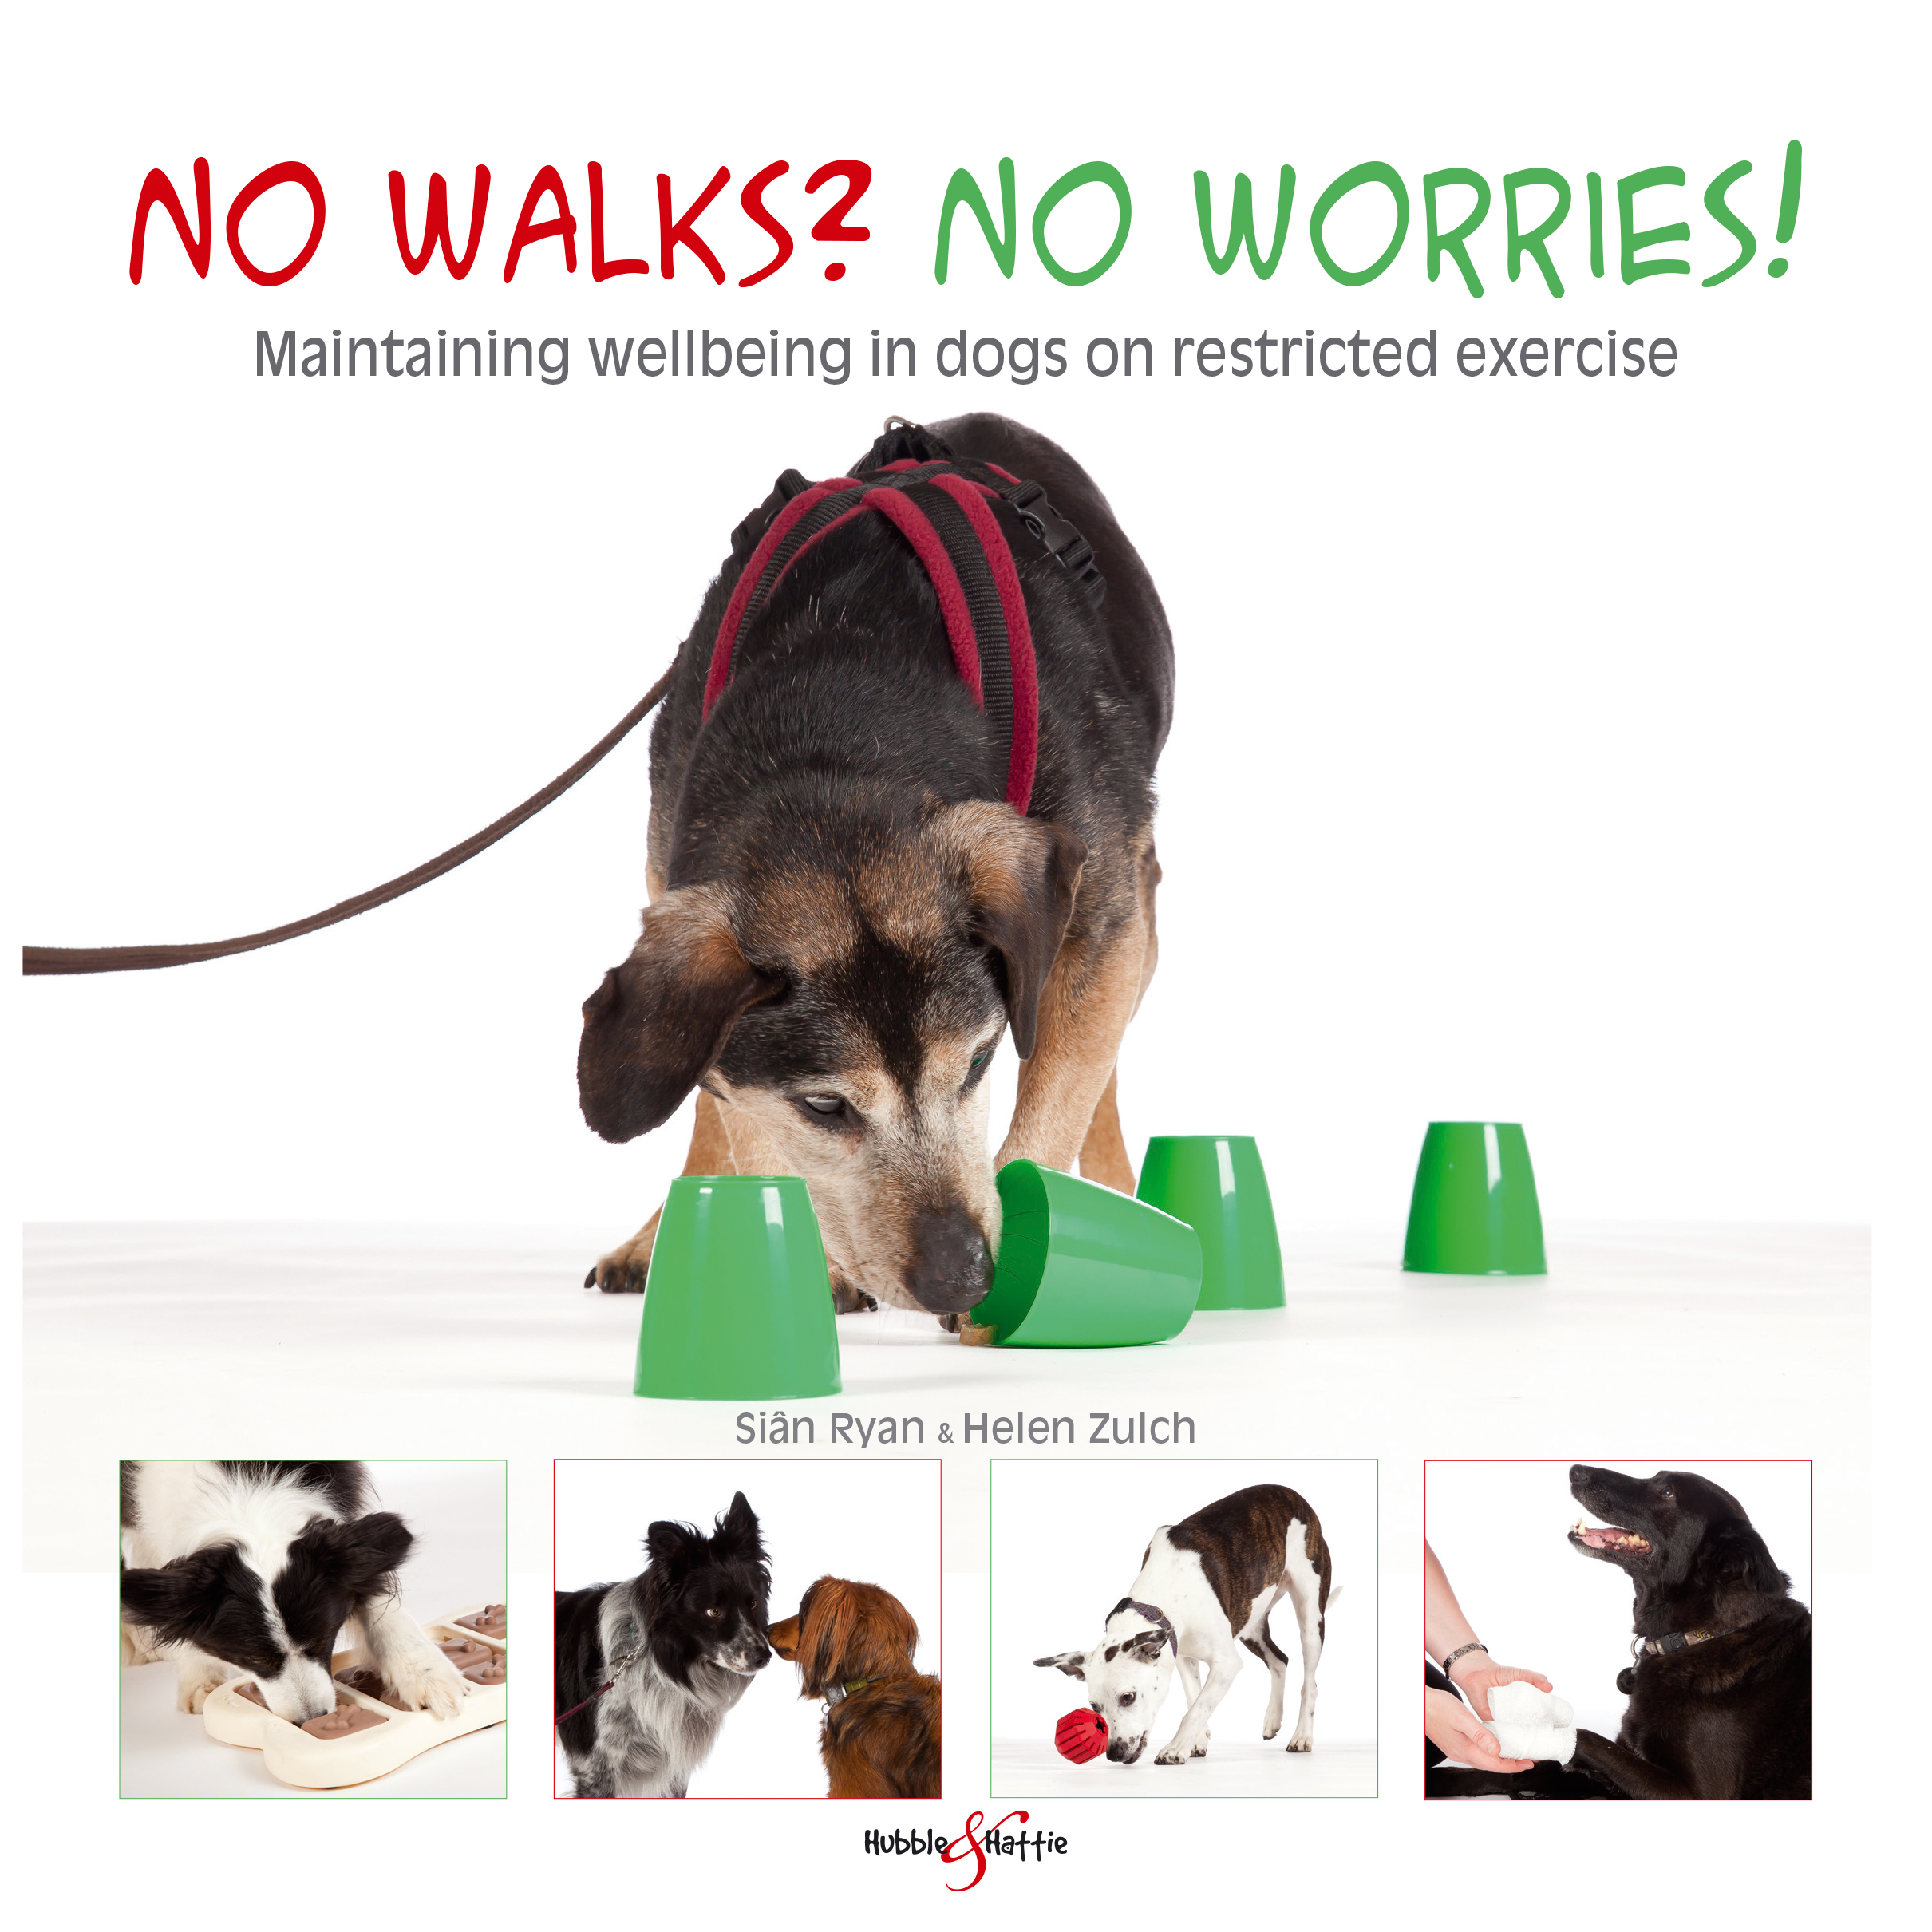 No walks? No worries! – Maintaining wellbeing in dogs on restricted exercise